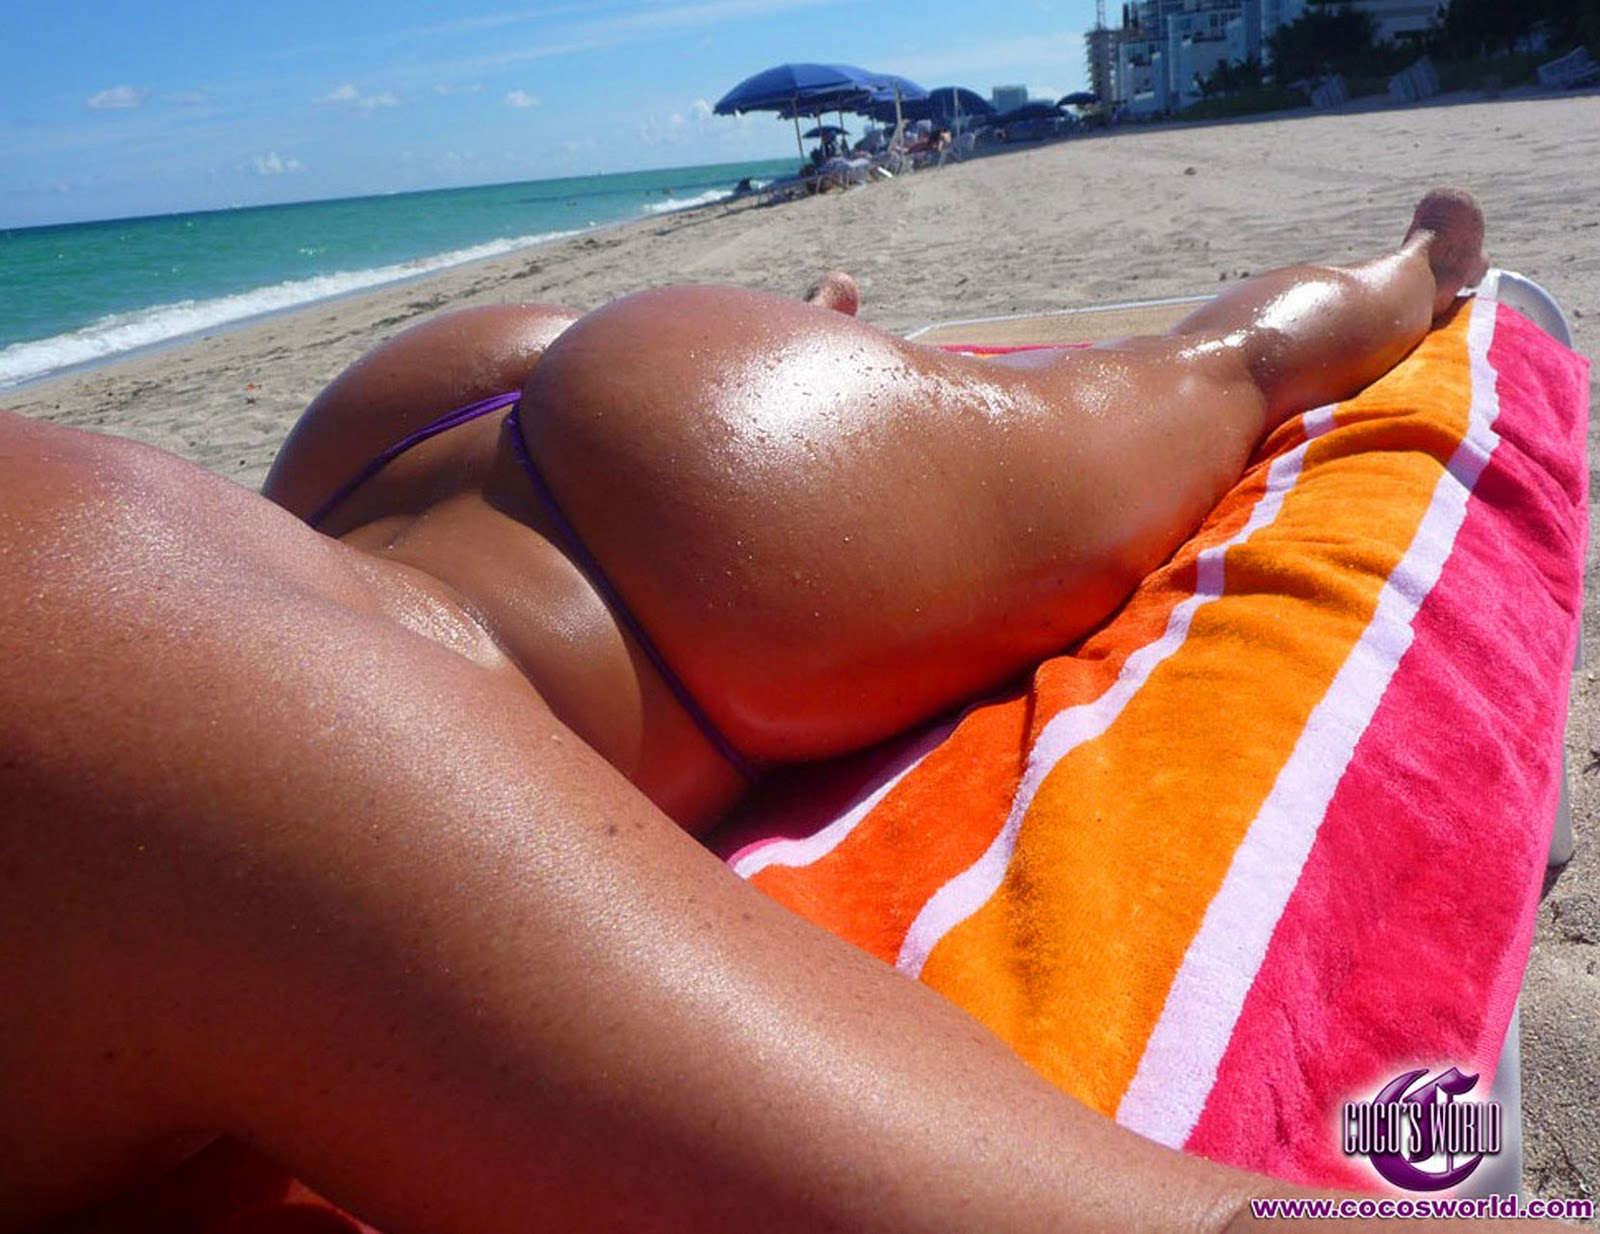 Perky blonde nude beach girls